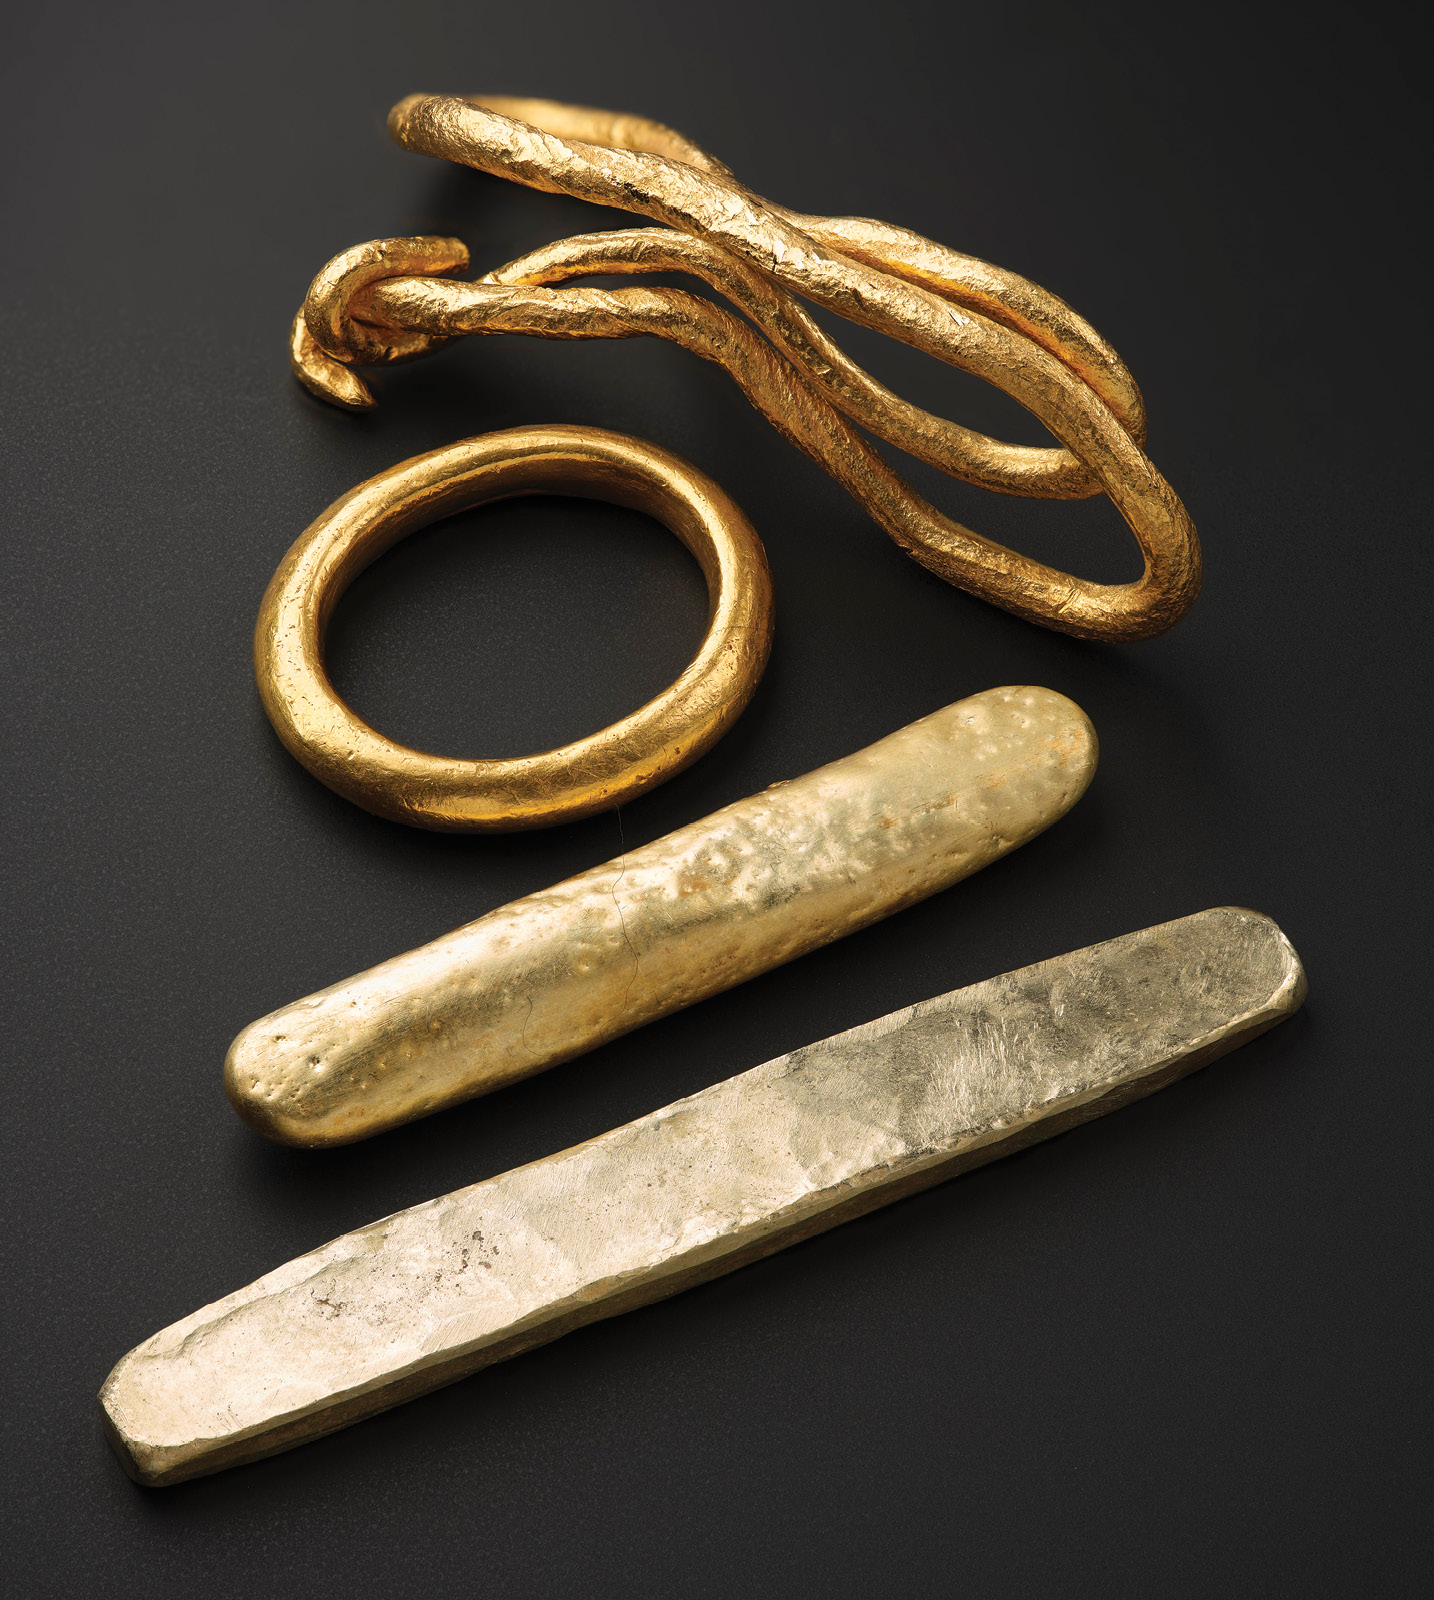 RIGHT The Galloway Hoard contains the largest collection of Viking Age gold surviving from Britain and Ireland. These are just a few of the eclectic objects within this group, which might suggest different origins and manufacturing traditions.